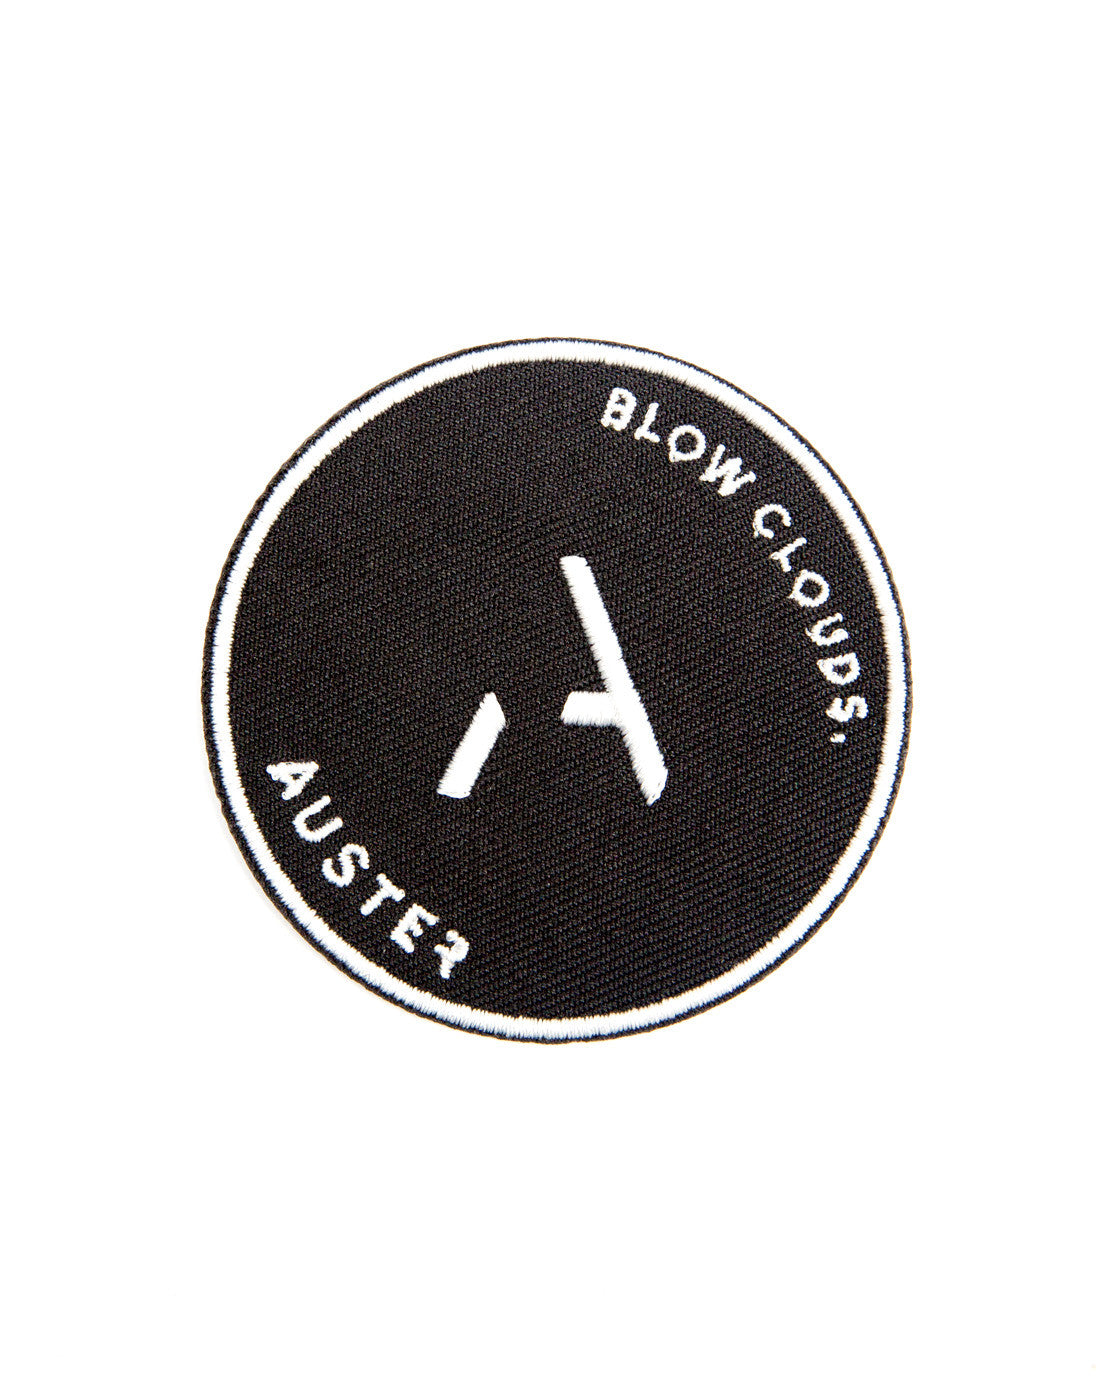 AUSTER PATCH SERIES 1<br>(for a little style boost)